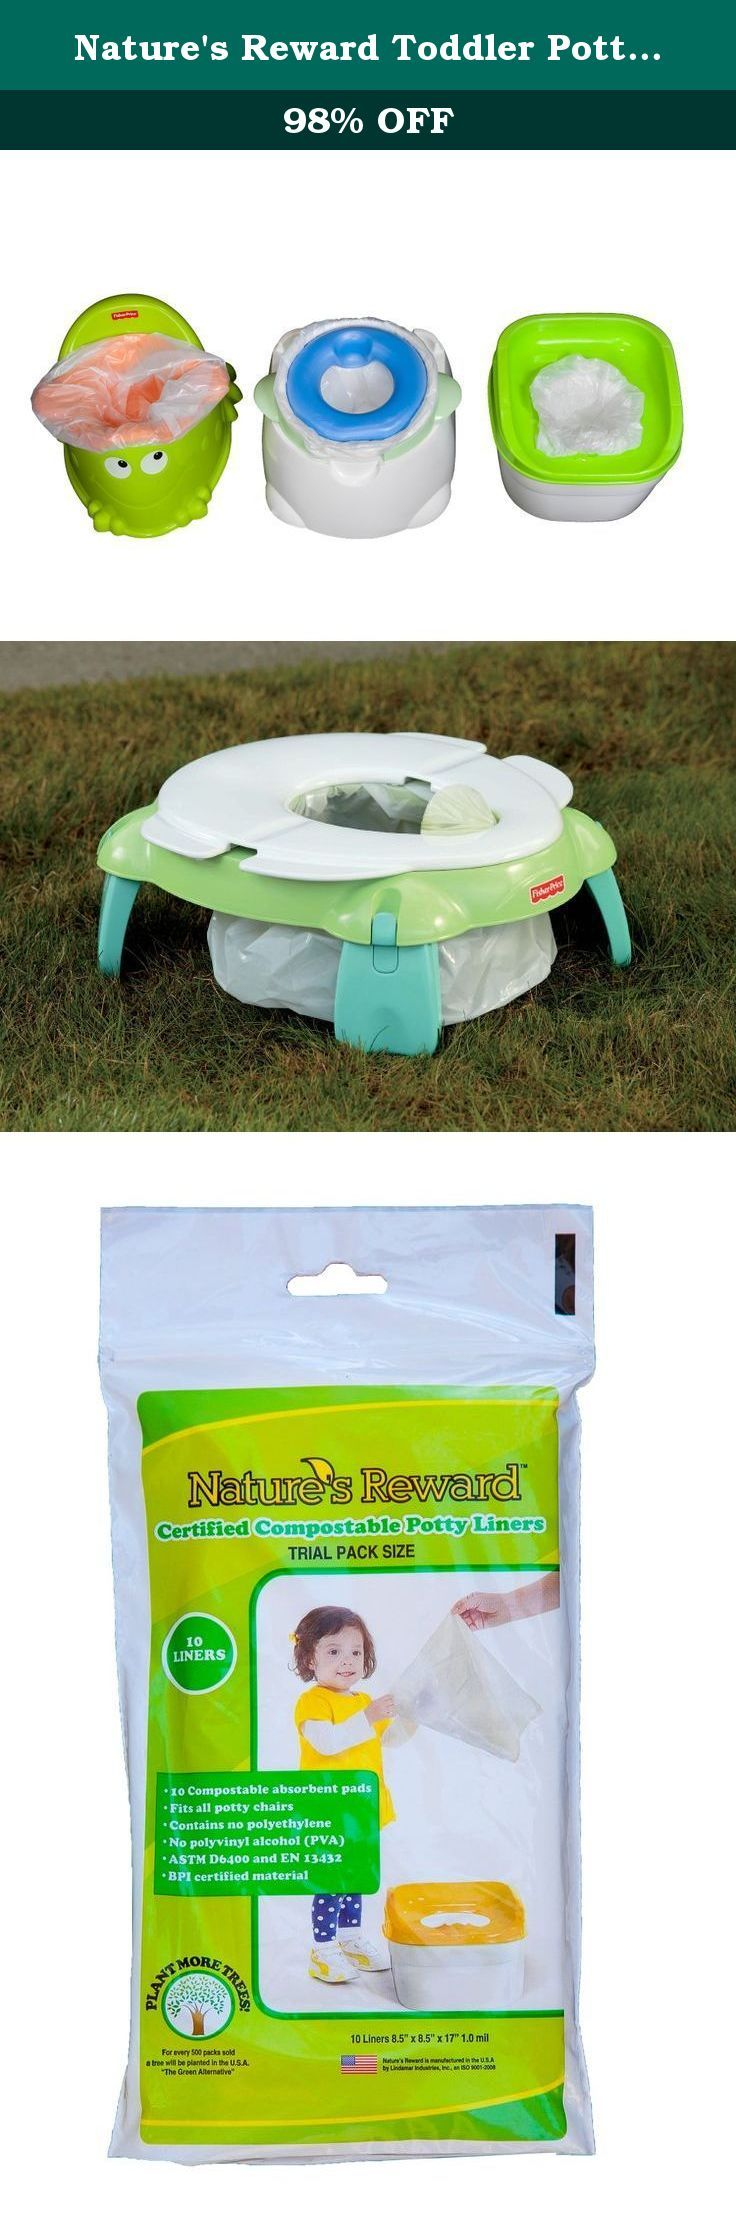 Nature's Reward Toddler Potty Chair Liners, Eco-Friendly, Fits Most Potty Chairs: Trial Pack - 10 Liners. NATURE'S REWARD New Biodegradable Toddler Potty Chair Liners are an environmentally friendly alternative to use when your toddler is potty training. Each liner is manufactured from certified compostable materials including plant based raw materials. It does not contain any traditional petroleum based plastic resin such as polyethylene. Ideal for use in the home or when you travel…